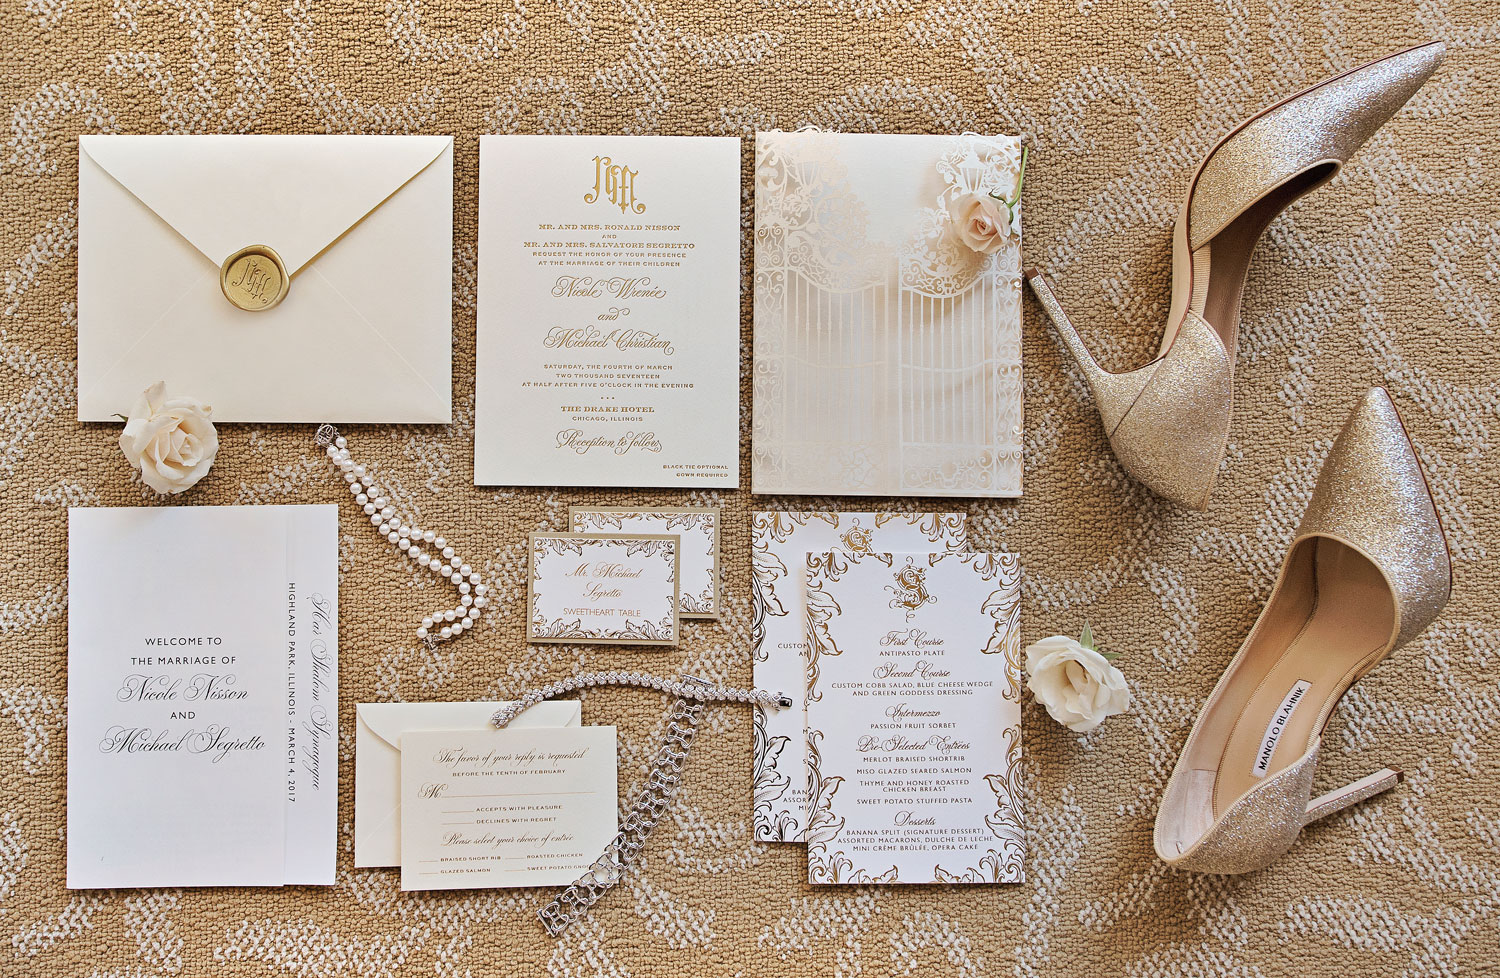 Inside Weddings winter 2018 issue preview real weddings wedding ideas sophisticated invitation suite